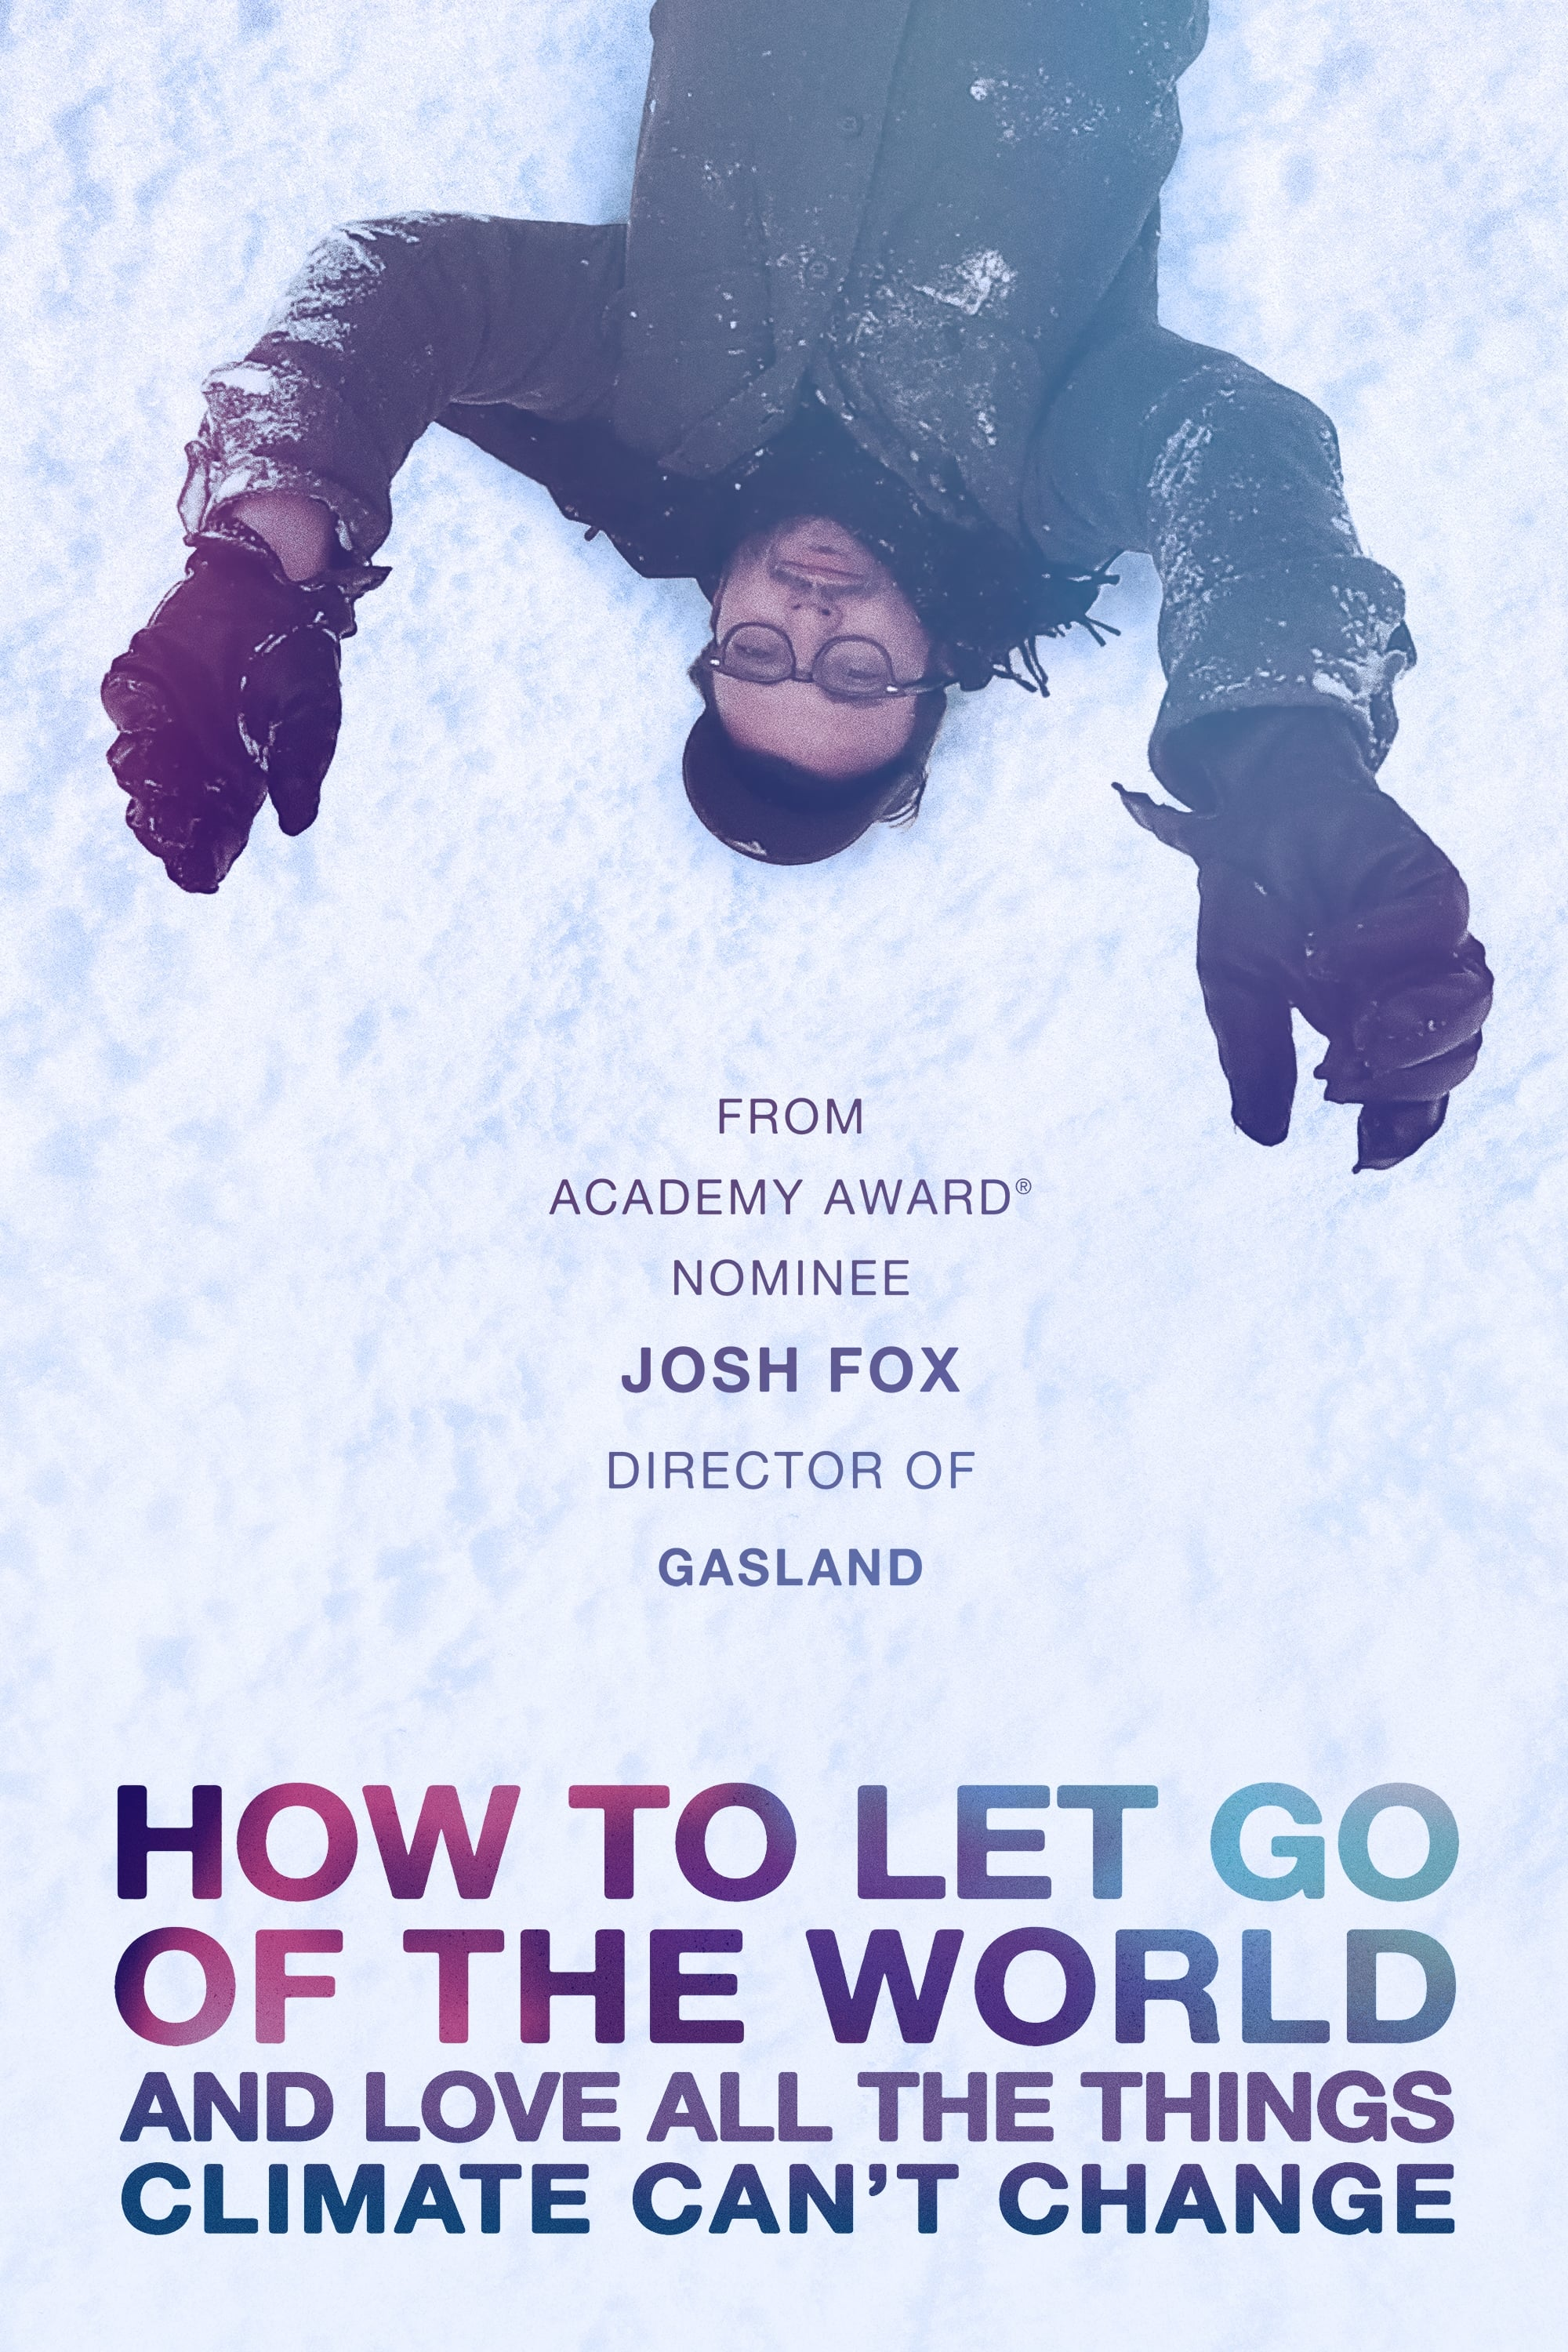 How to Let Go of the World and Love All the Things Climate Can't Change (2016)